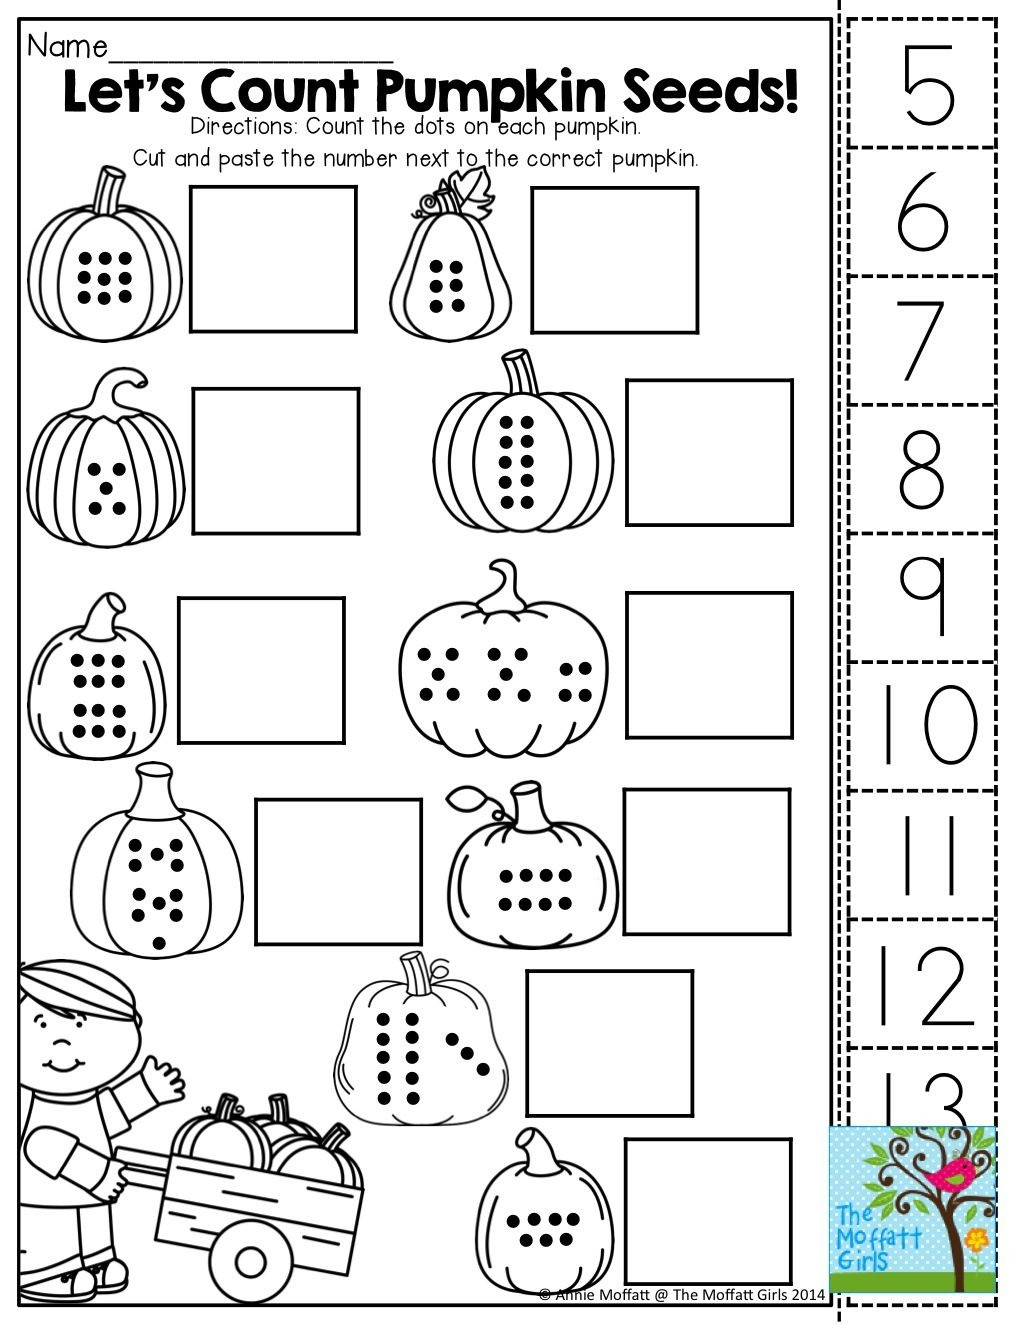 Printable Cut and Paste Worksheets Grammar Cut and Paste Worksheets